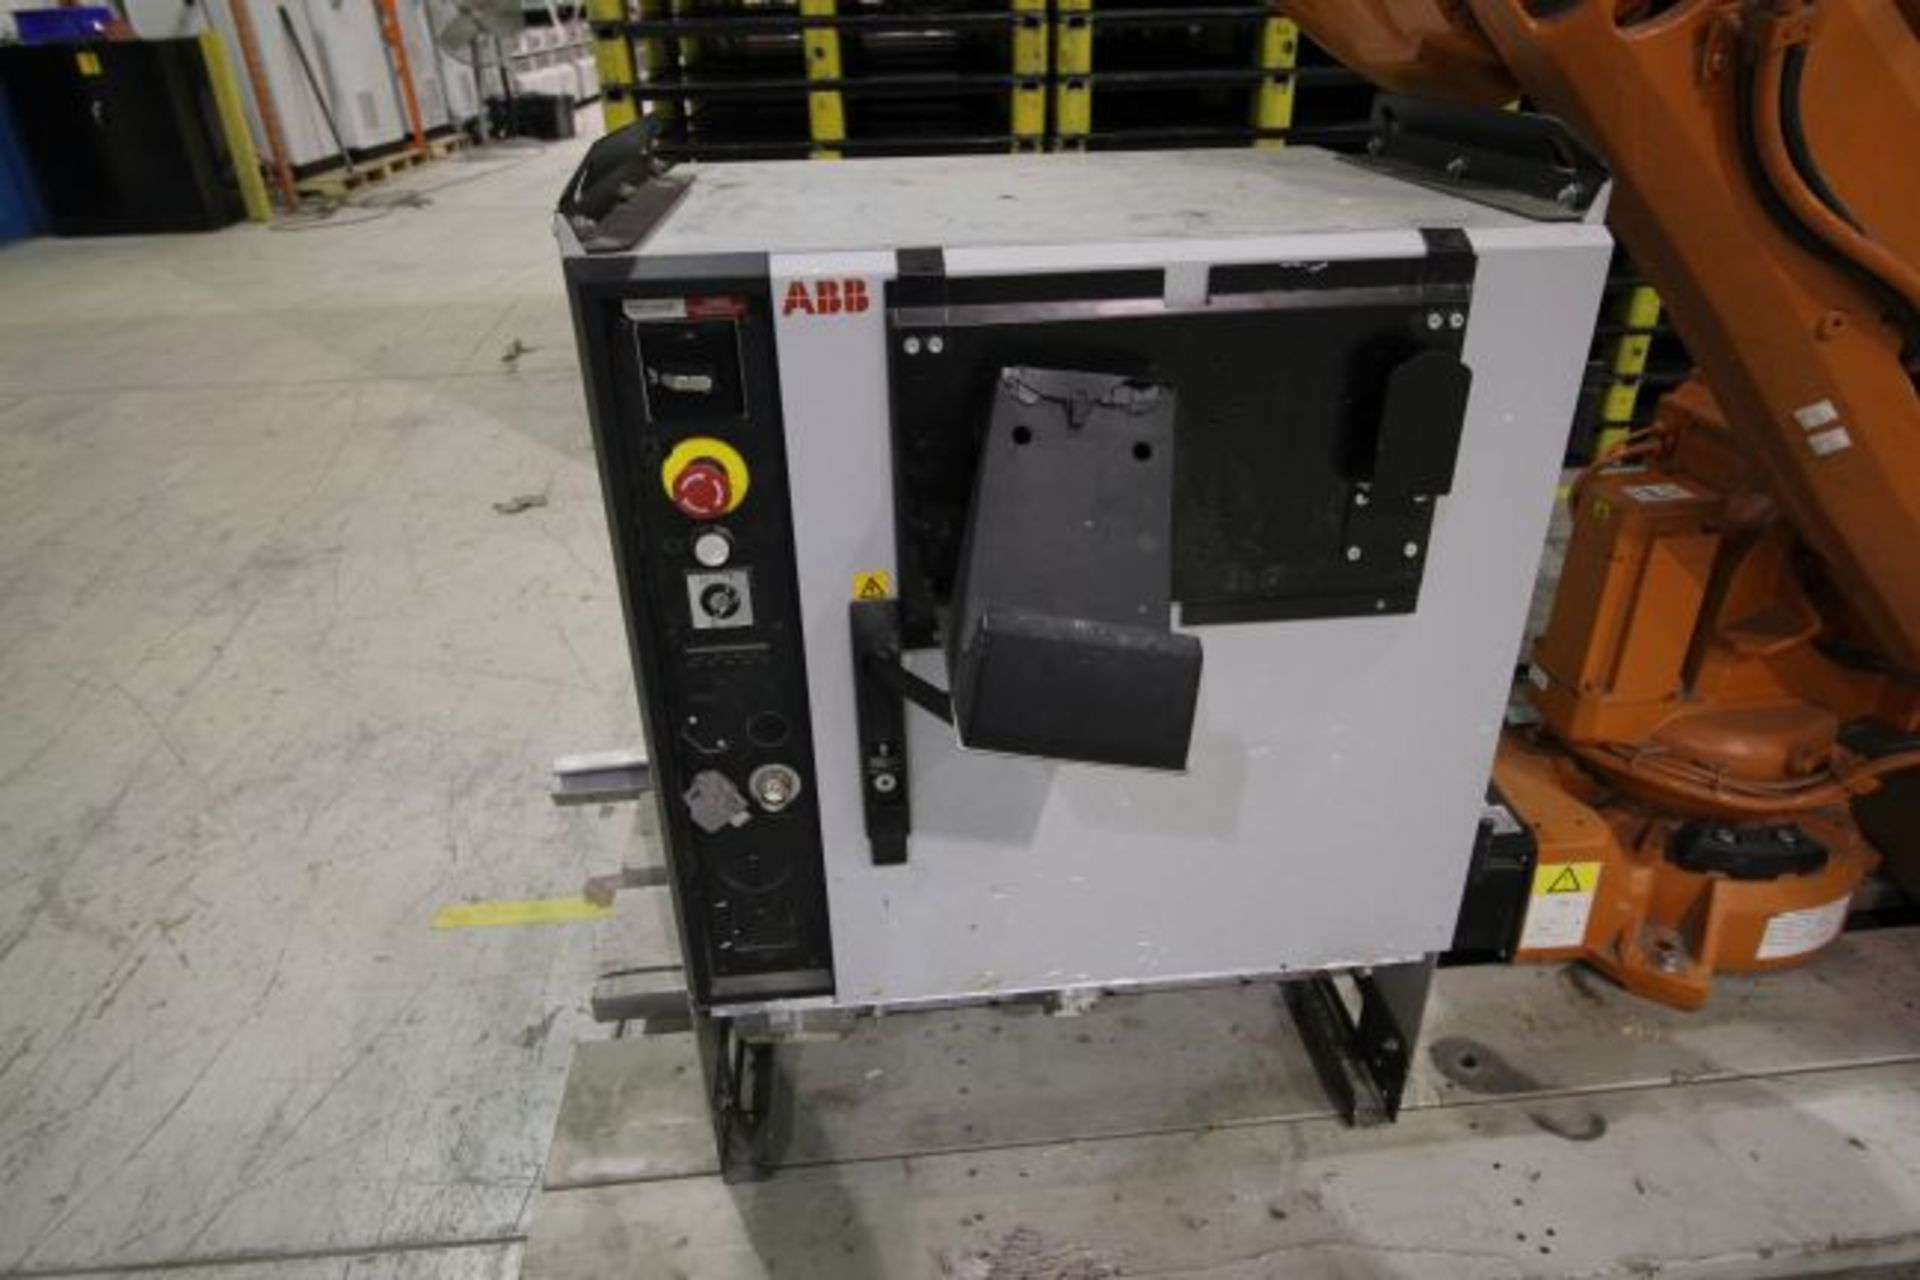 Lot 2 - ABB ROBOT IRB 4600 2.05/45KG WITH IRC5 CONTROLS, YEAR 2014, SN 500289 CABLES NO TEACH PENDANT